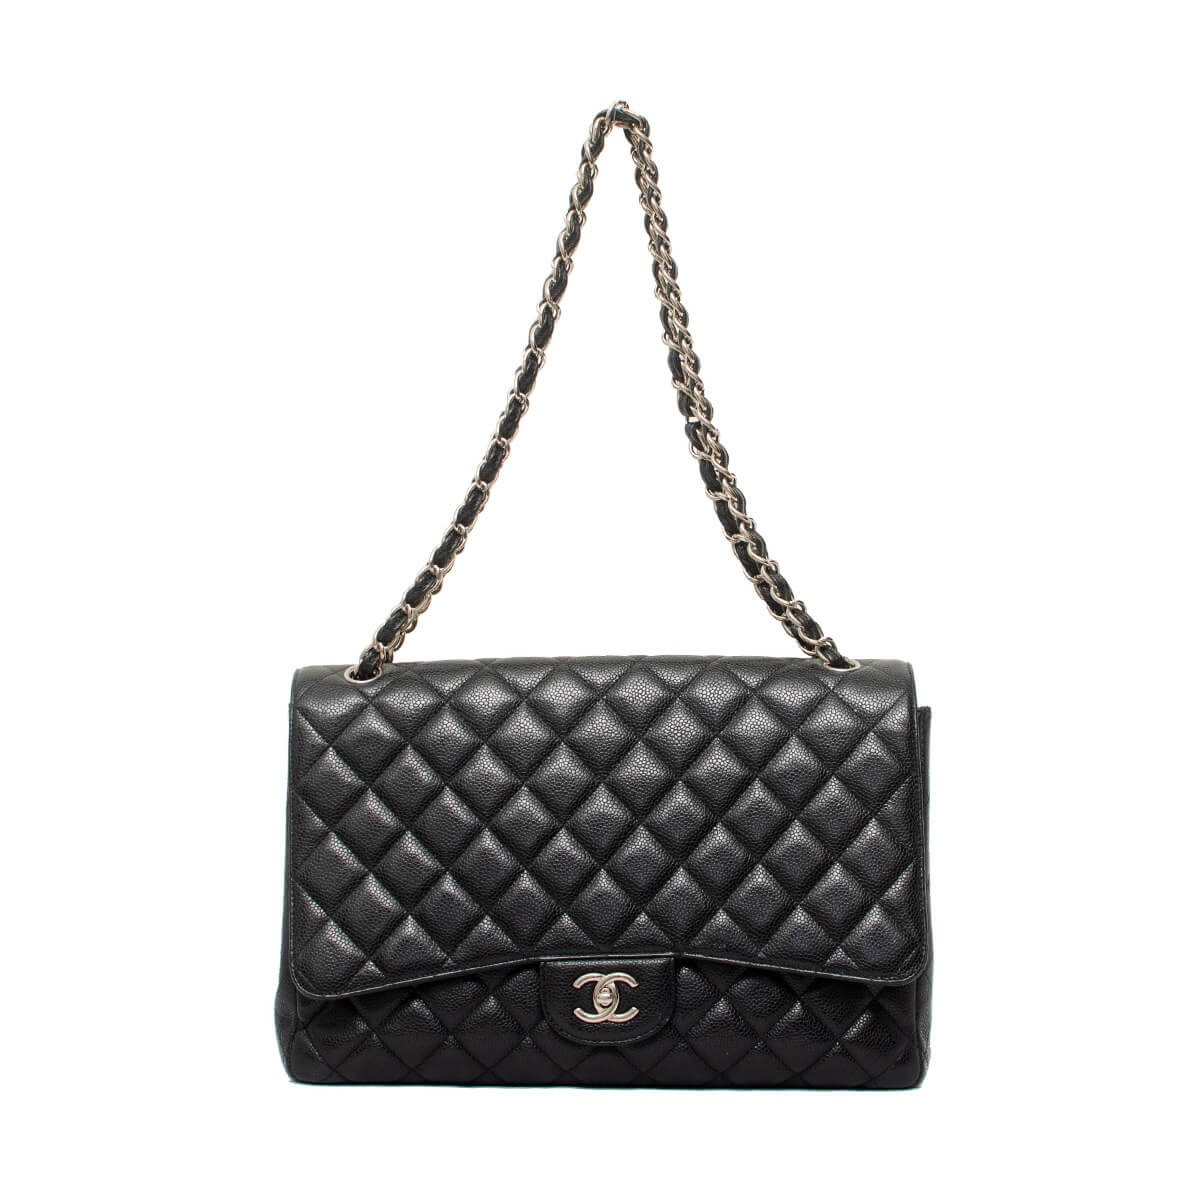 d2677e39523f Black Quilted Caviar Leather Classic Maxi Double Flap Bag